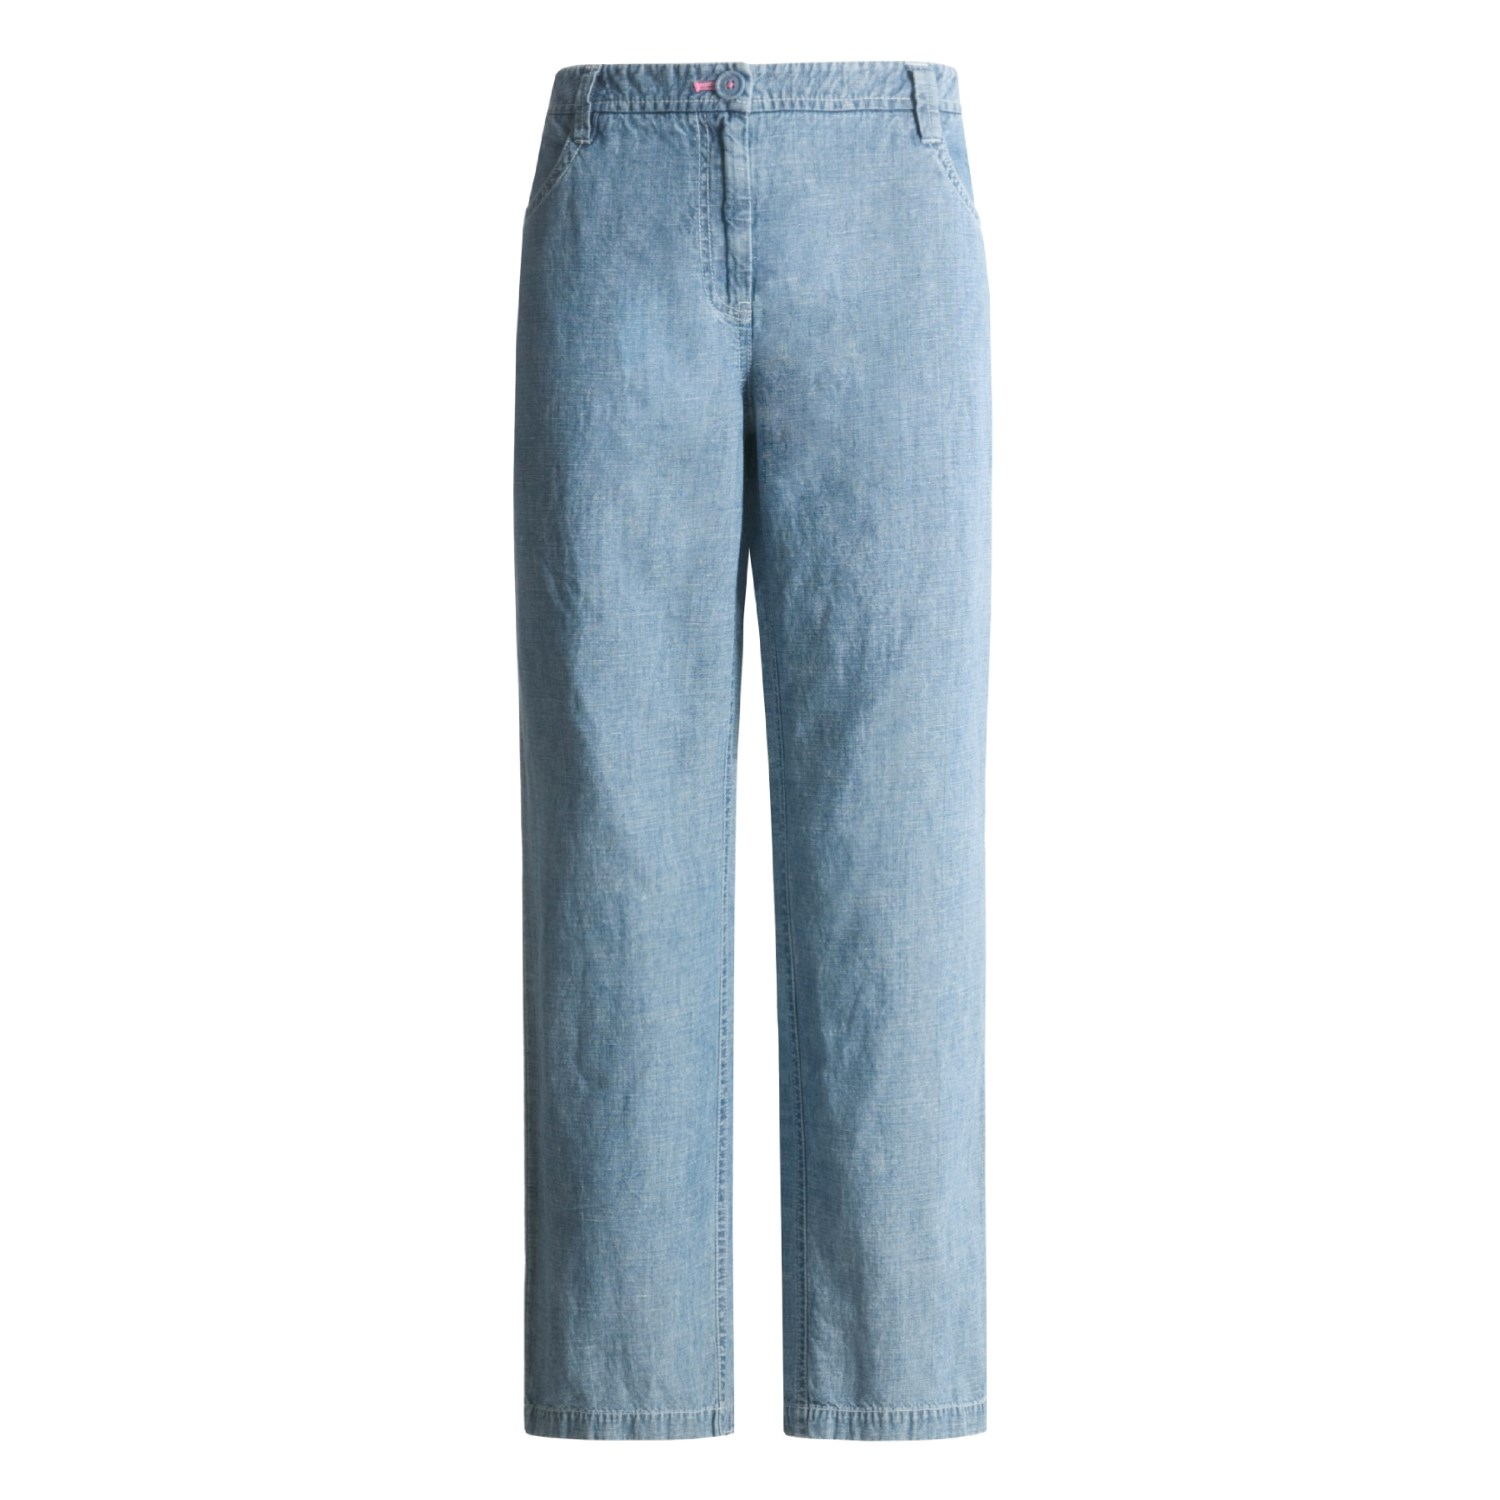 Susan bristol chambray pants for women 18652 save 74 for Chambray jeans